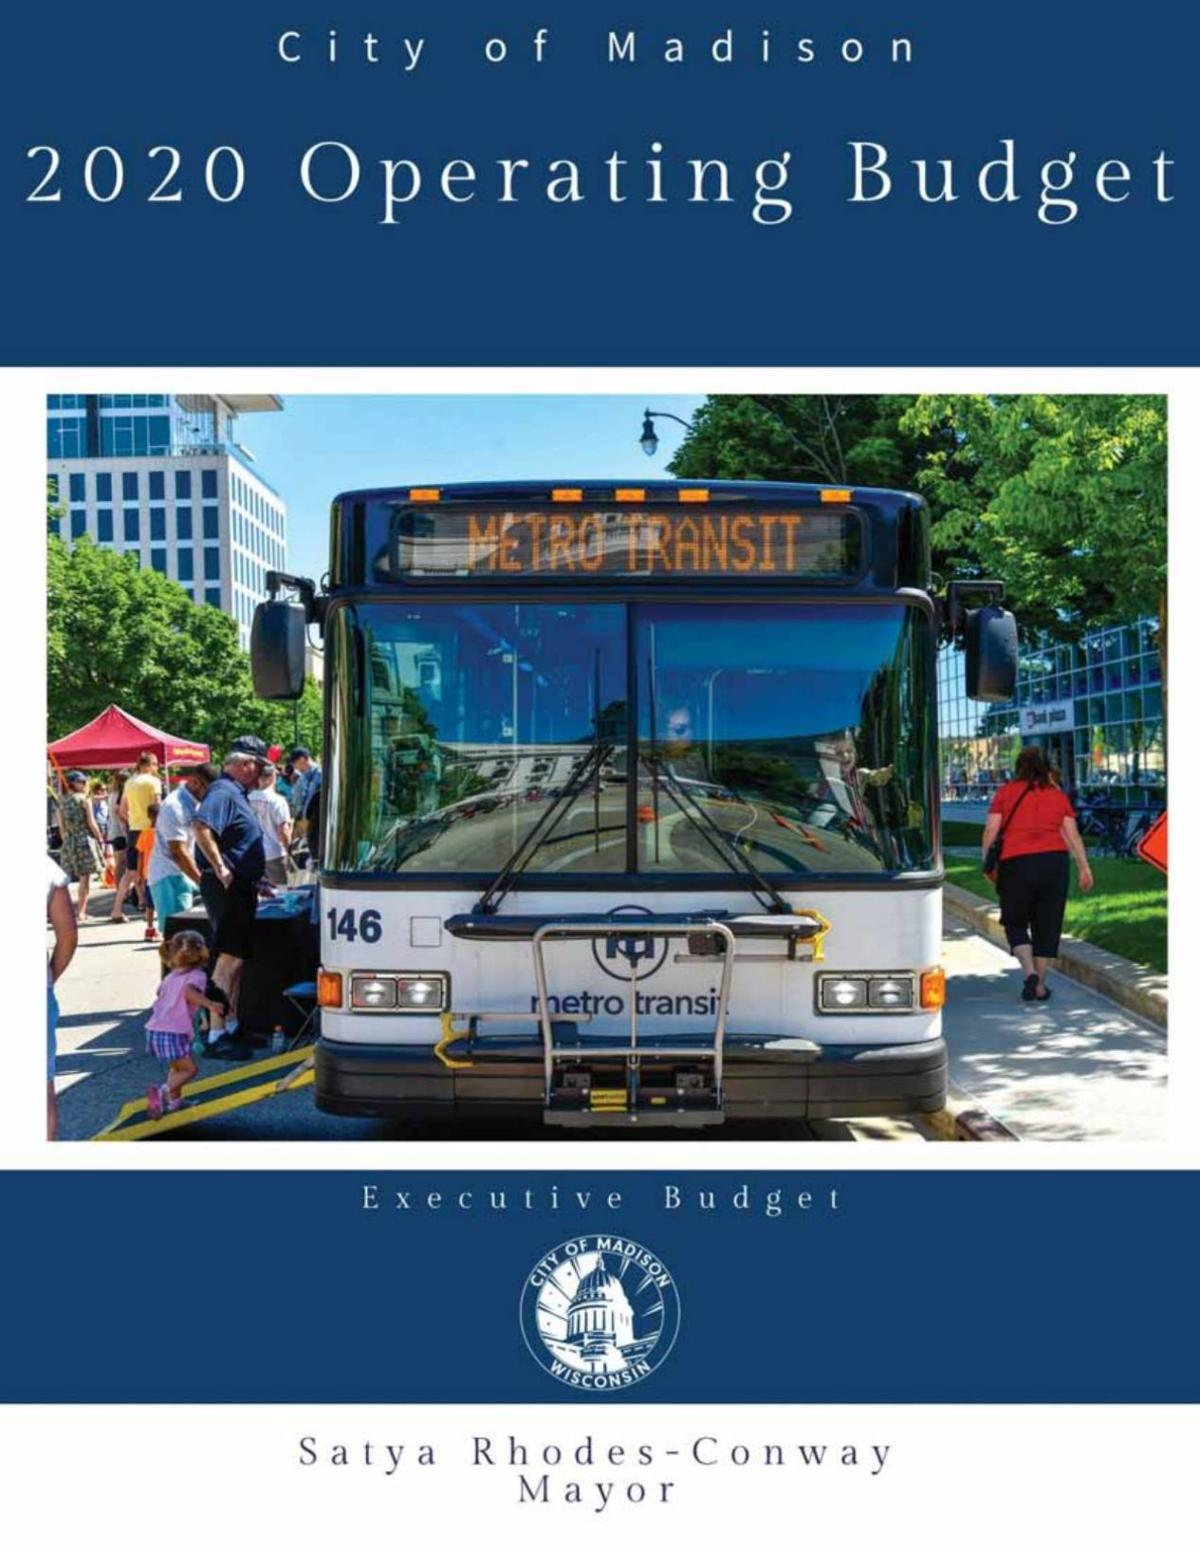 2020 proposed Madison operating budget